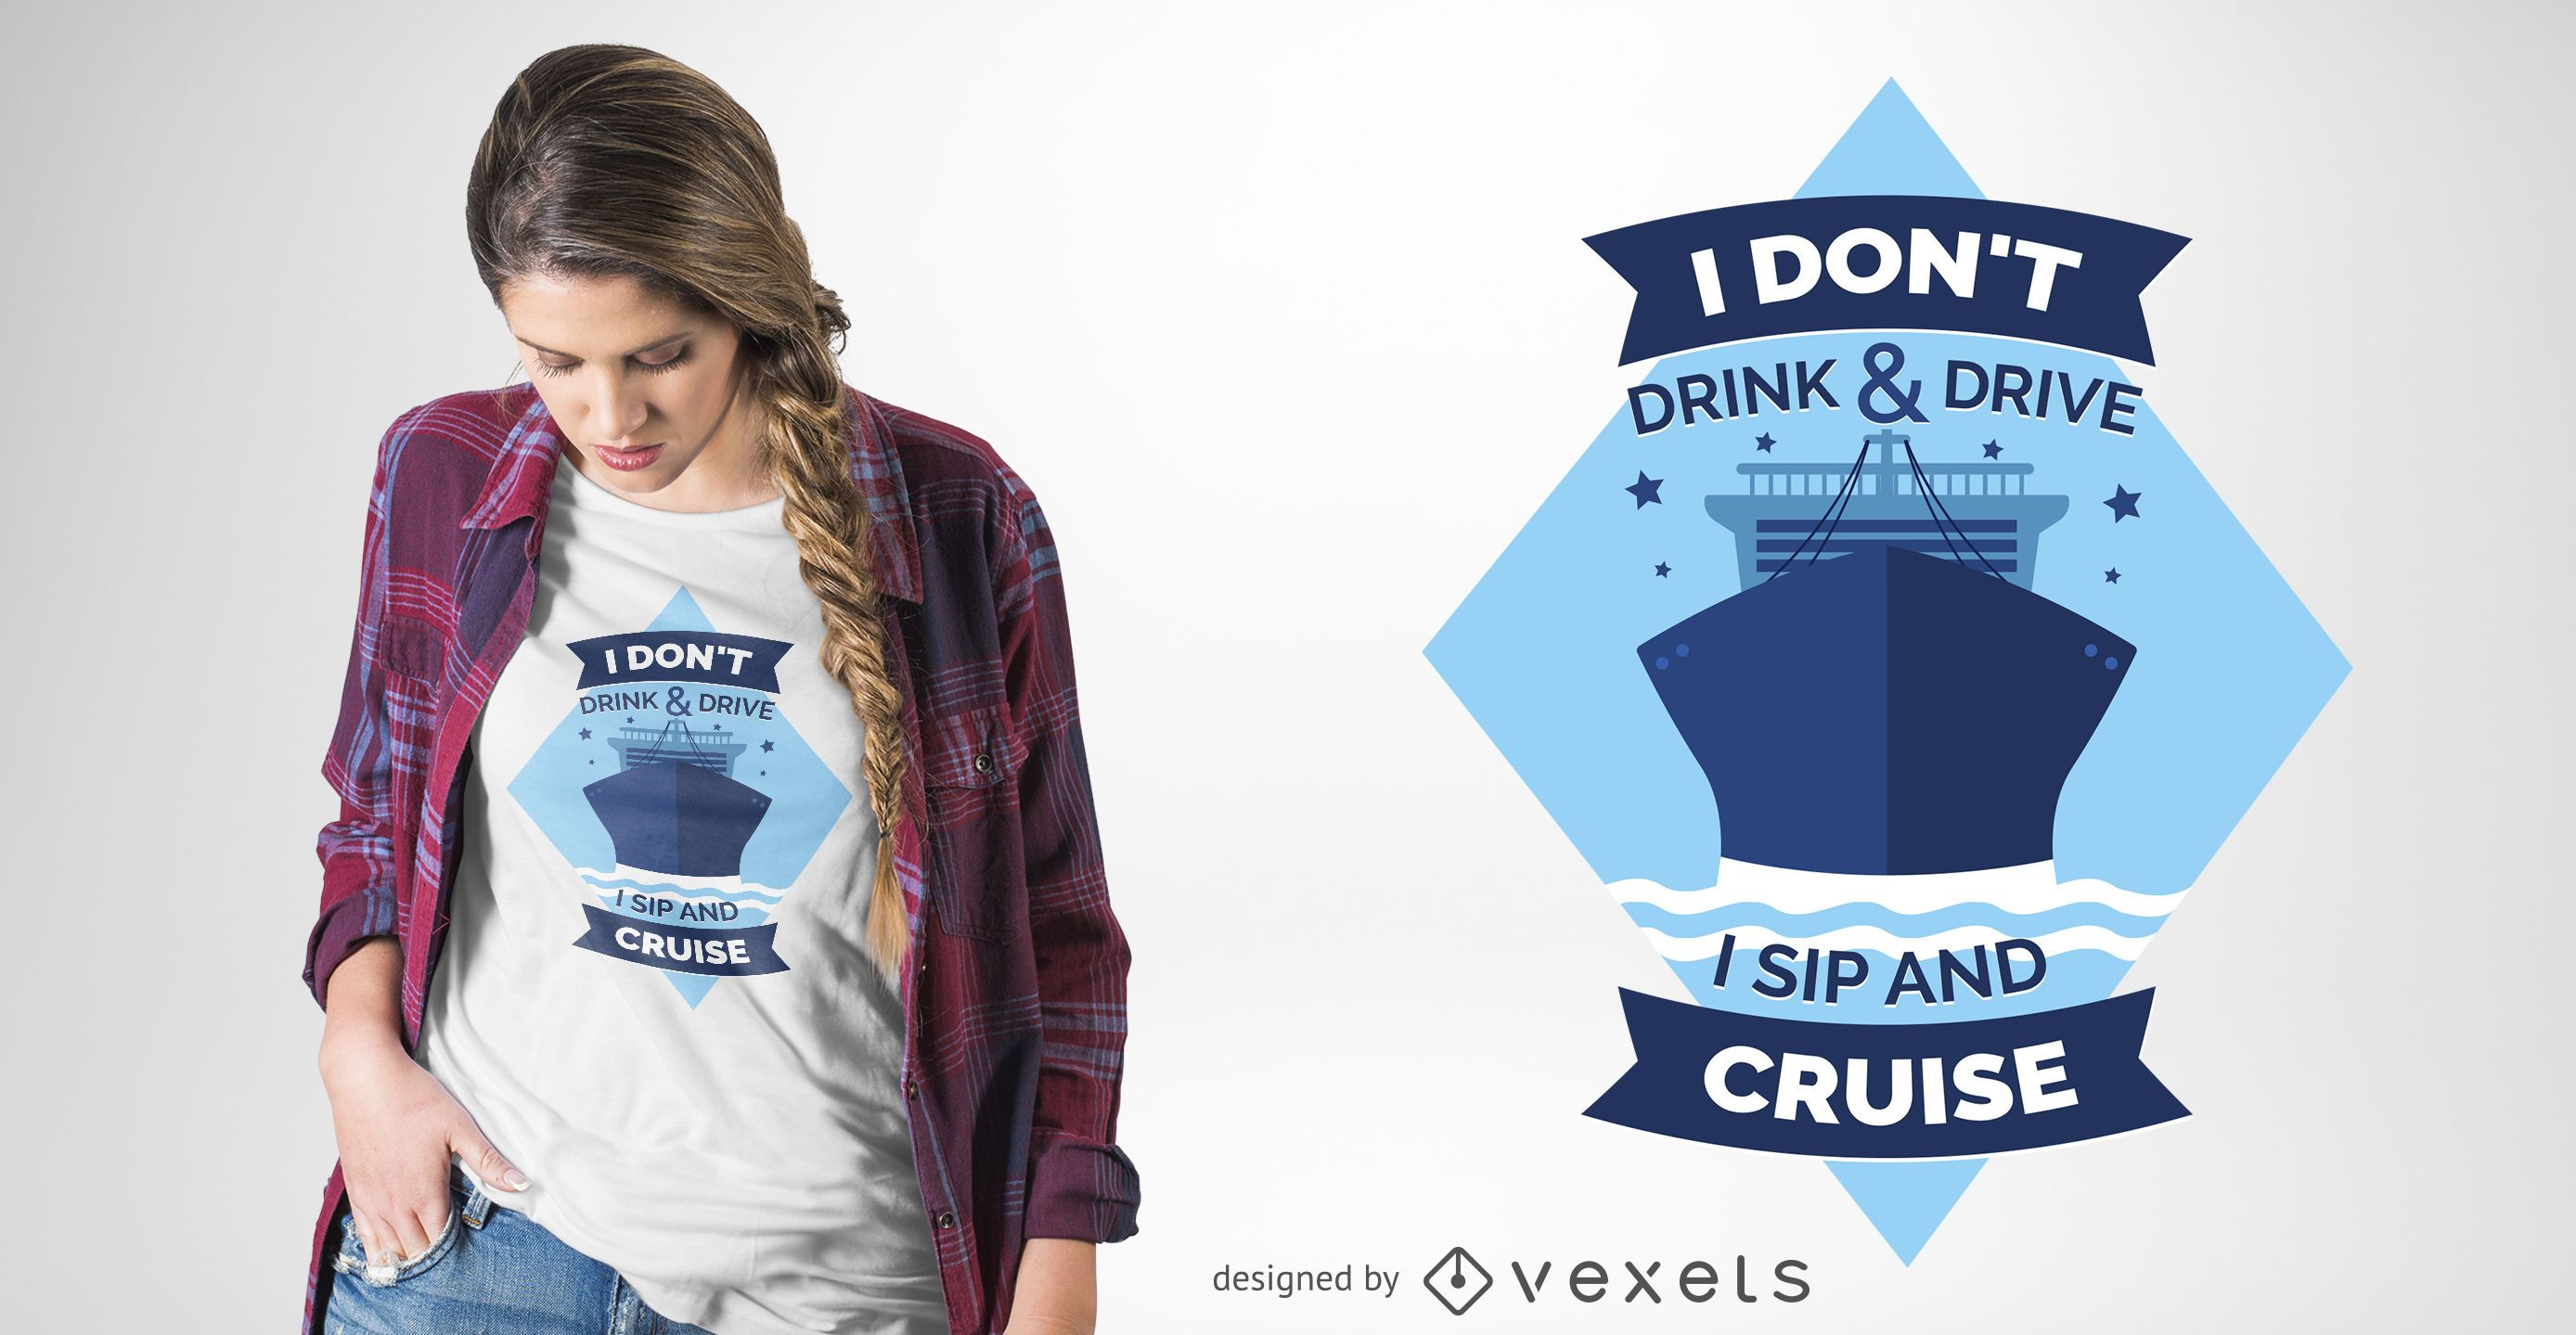 374db033 Funny Cruise Ship T-shirt Design. Download Large Image 2776x1439px. license  image; user